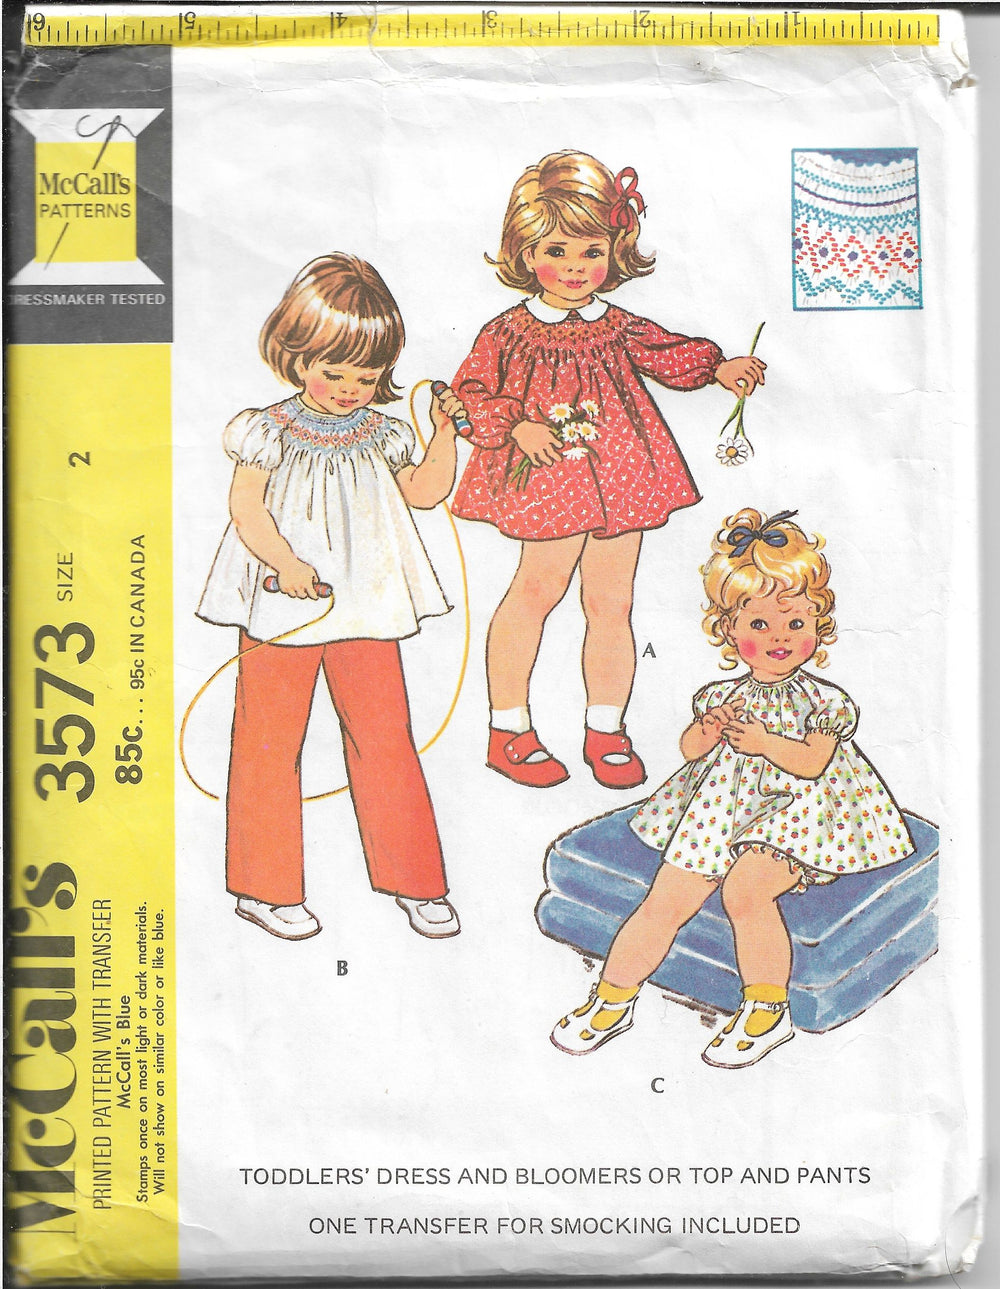 McCalls 3573 Toddlers Dress Bloomers Vintage Sewing Pattern 1970s - VintageStitching - Vintage Sewing Patterns